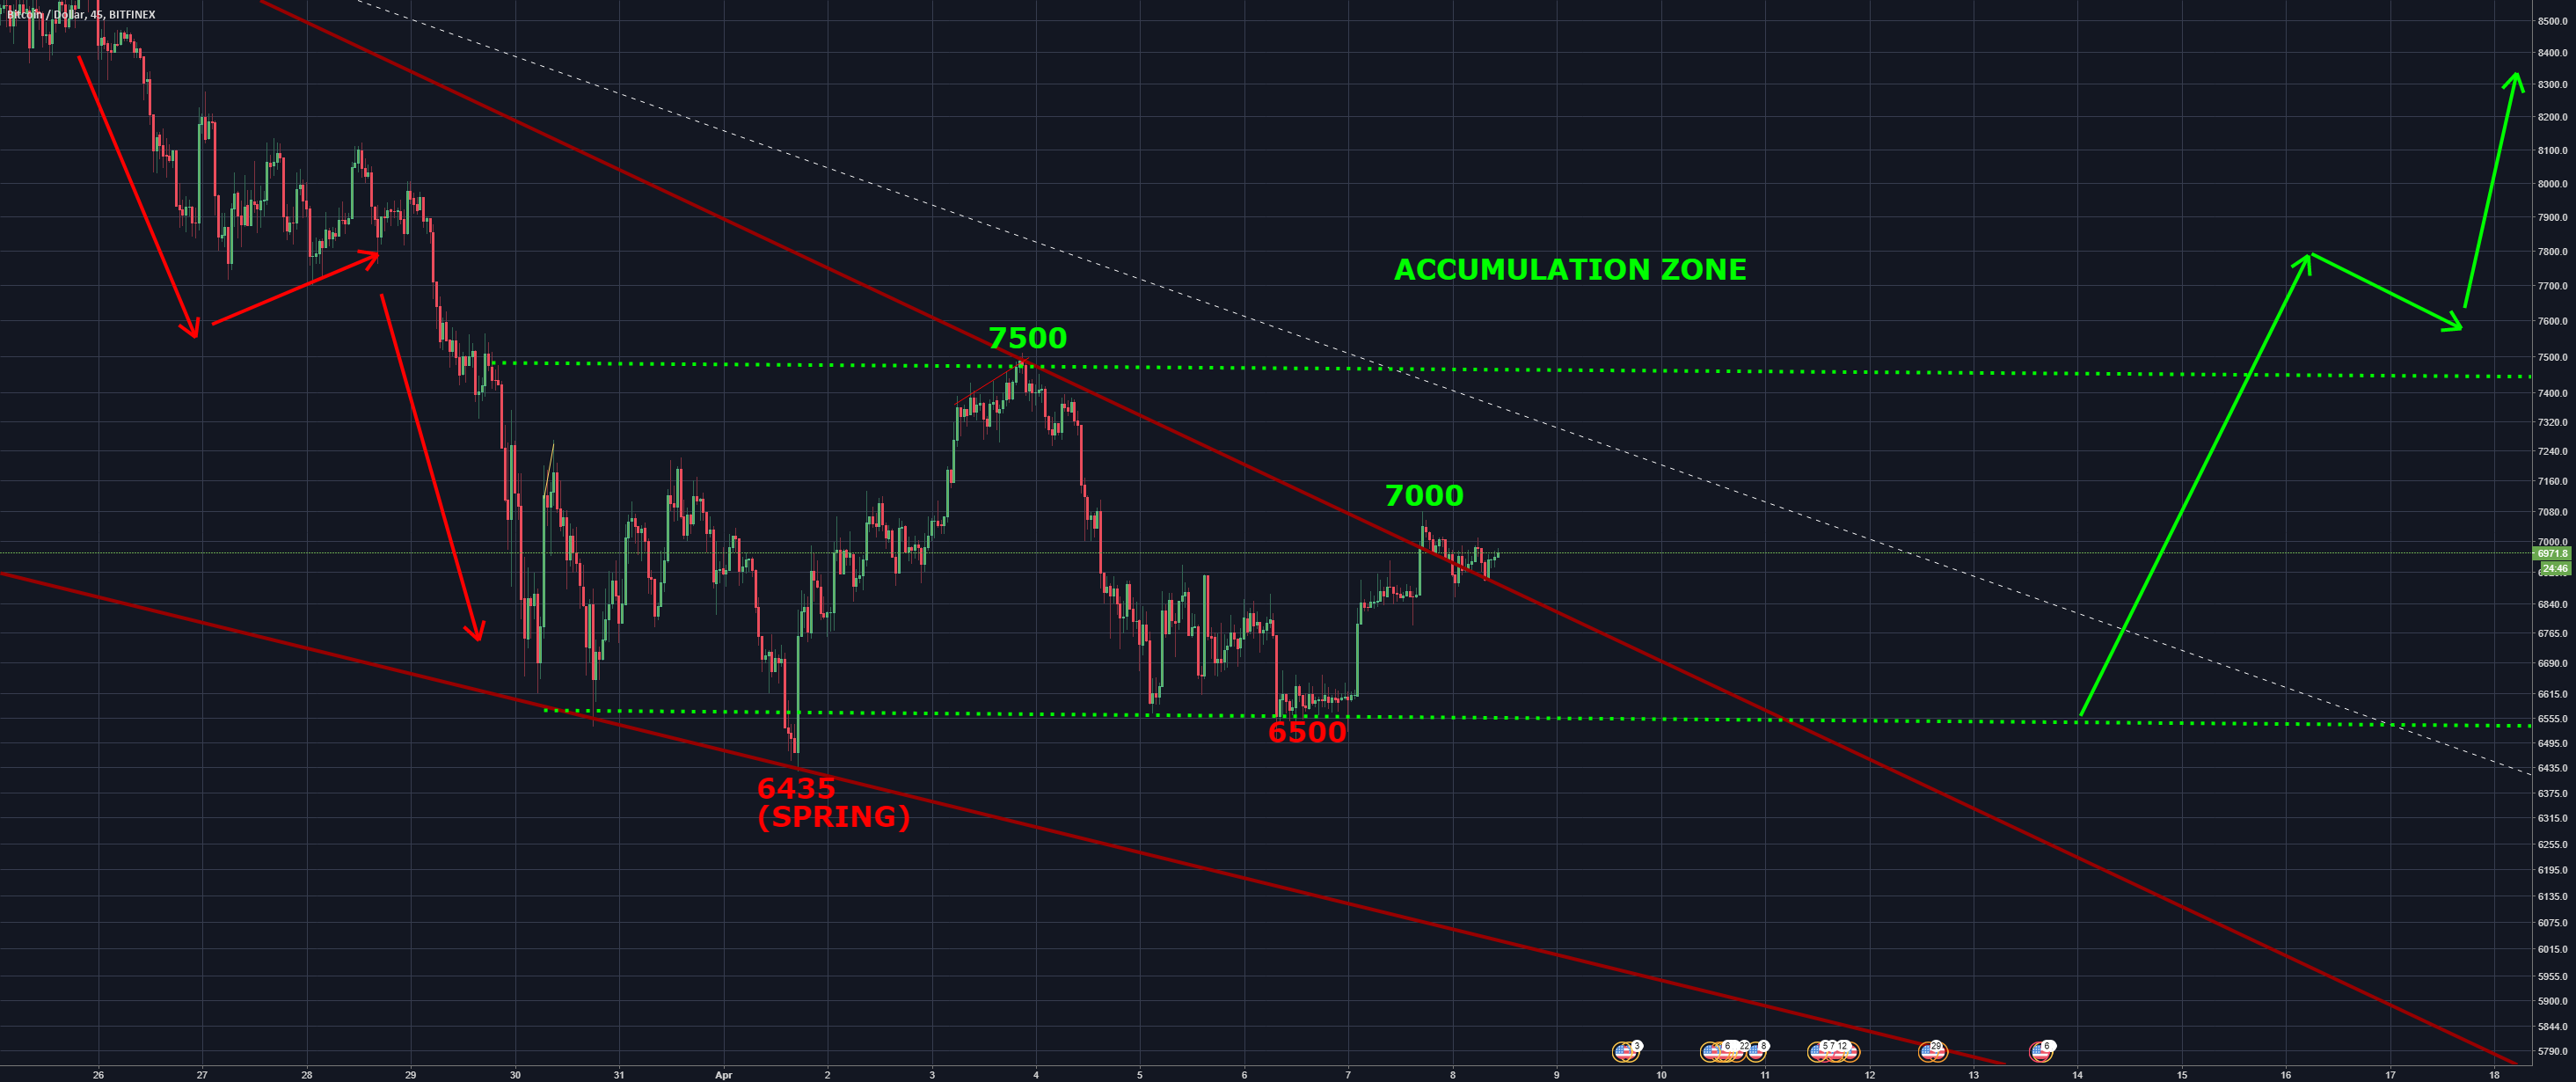 WE PLAY KING OF THE HILL! ENTER THE ACCUMULATION ZONE!(BITCOIN)